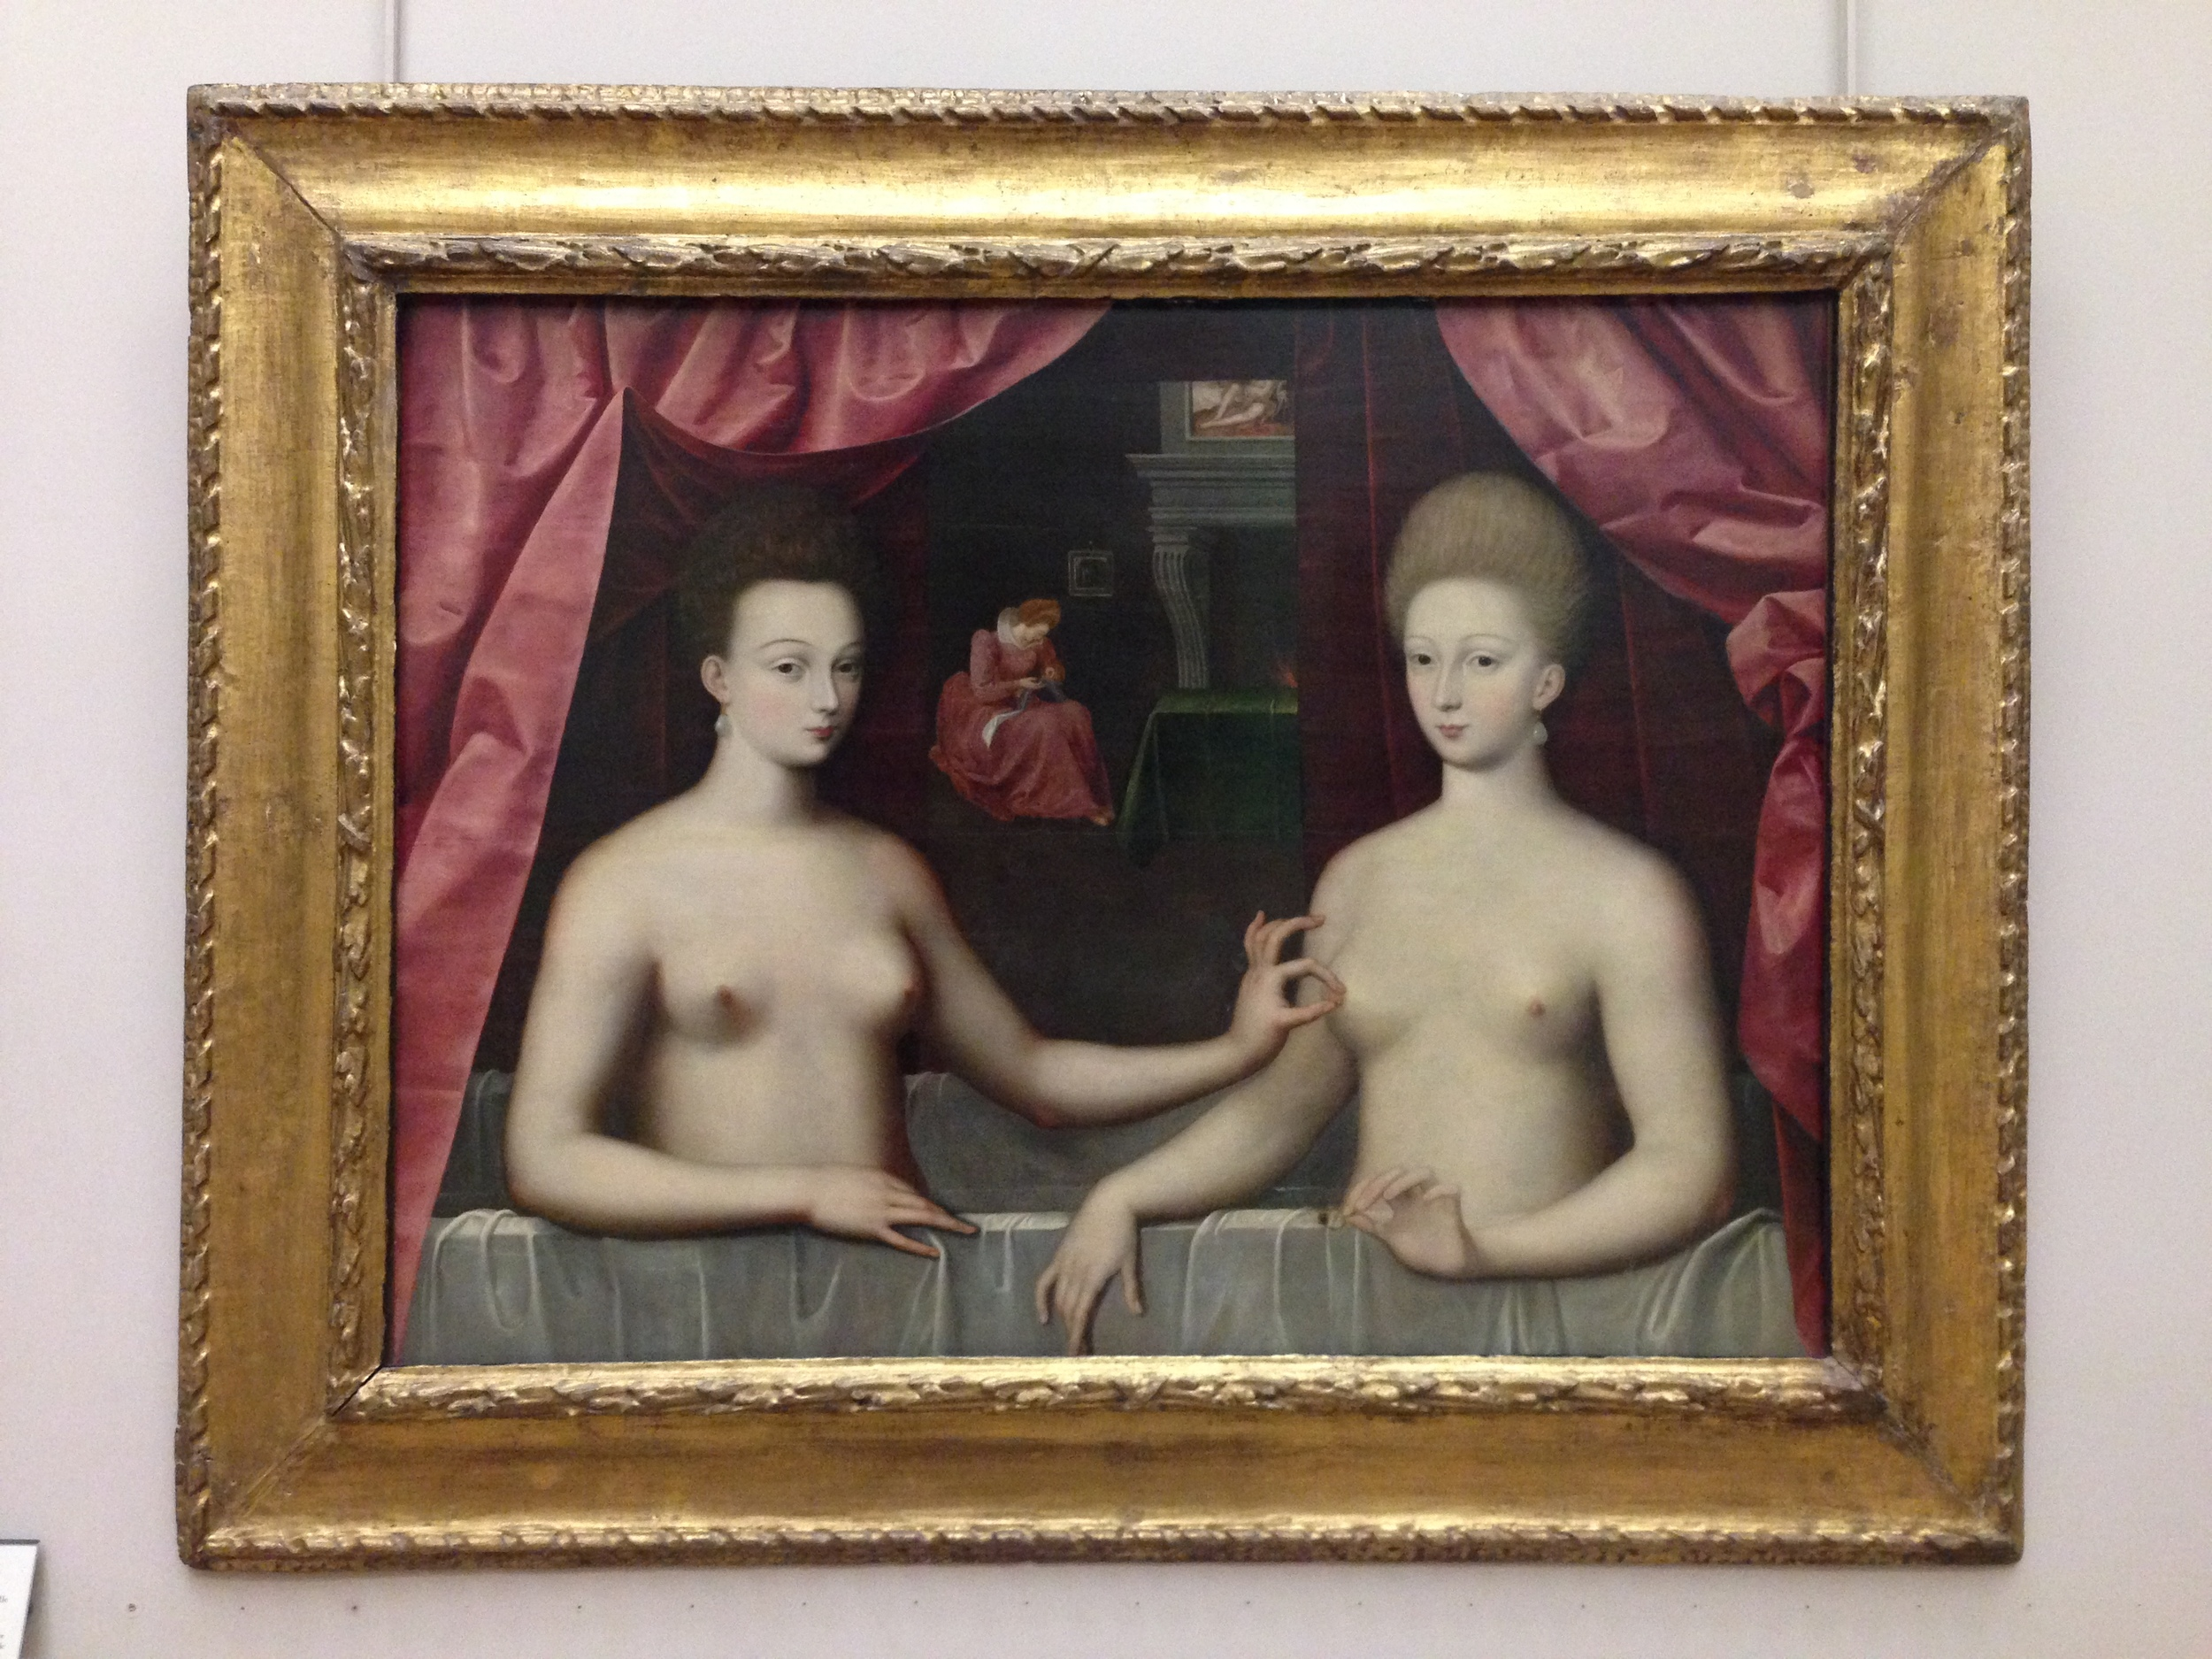 Gabrielle d'Estrées et une de ses soeurs,  which hangs in the Louvre.  Gabrielle pinches her sister's nipple, meaning her sister is pregnant. This is both funny and heartwarming at once, and I would never have seen it if I had not traveled.